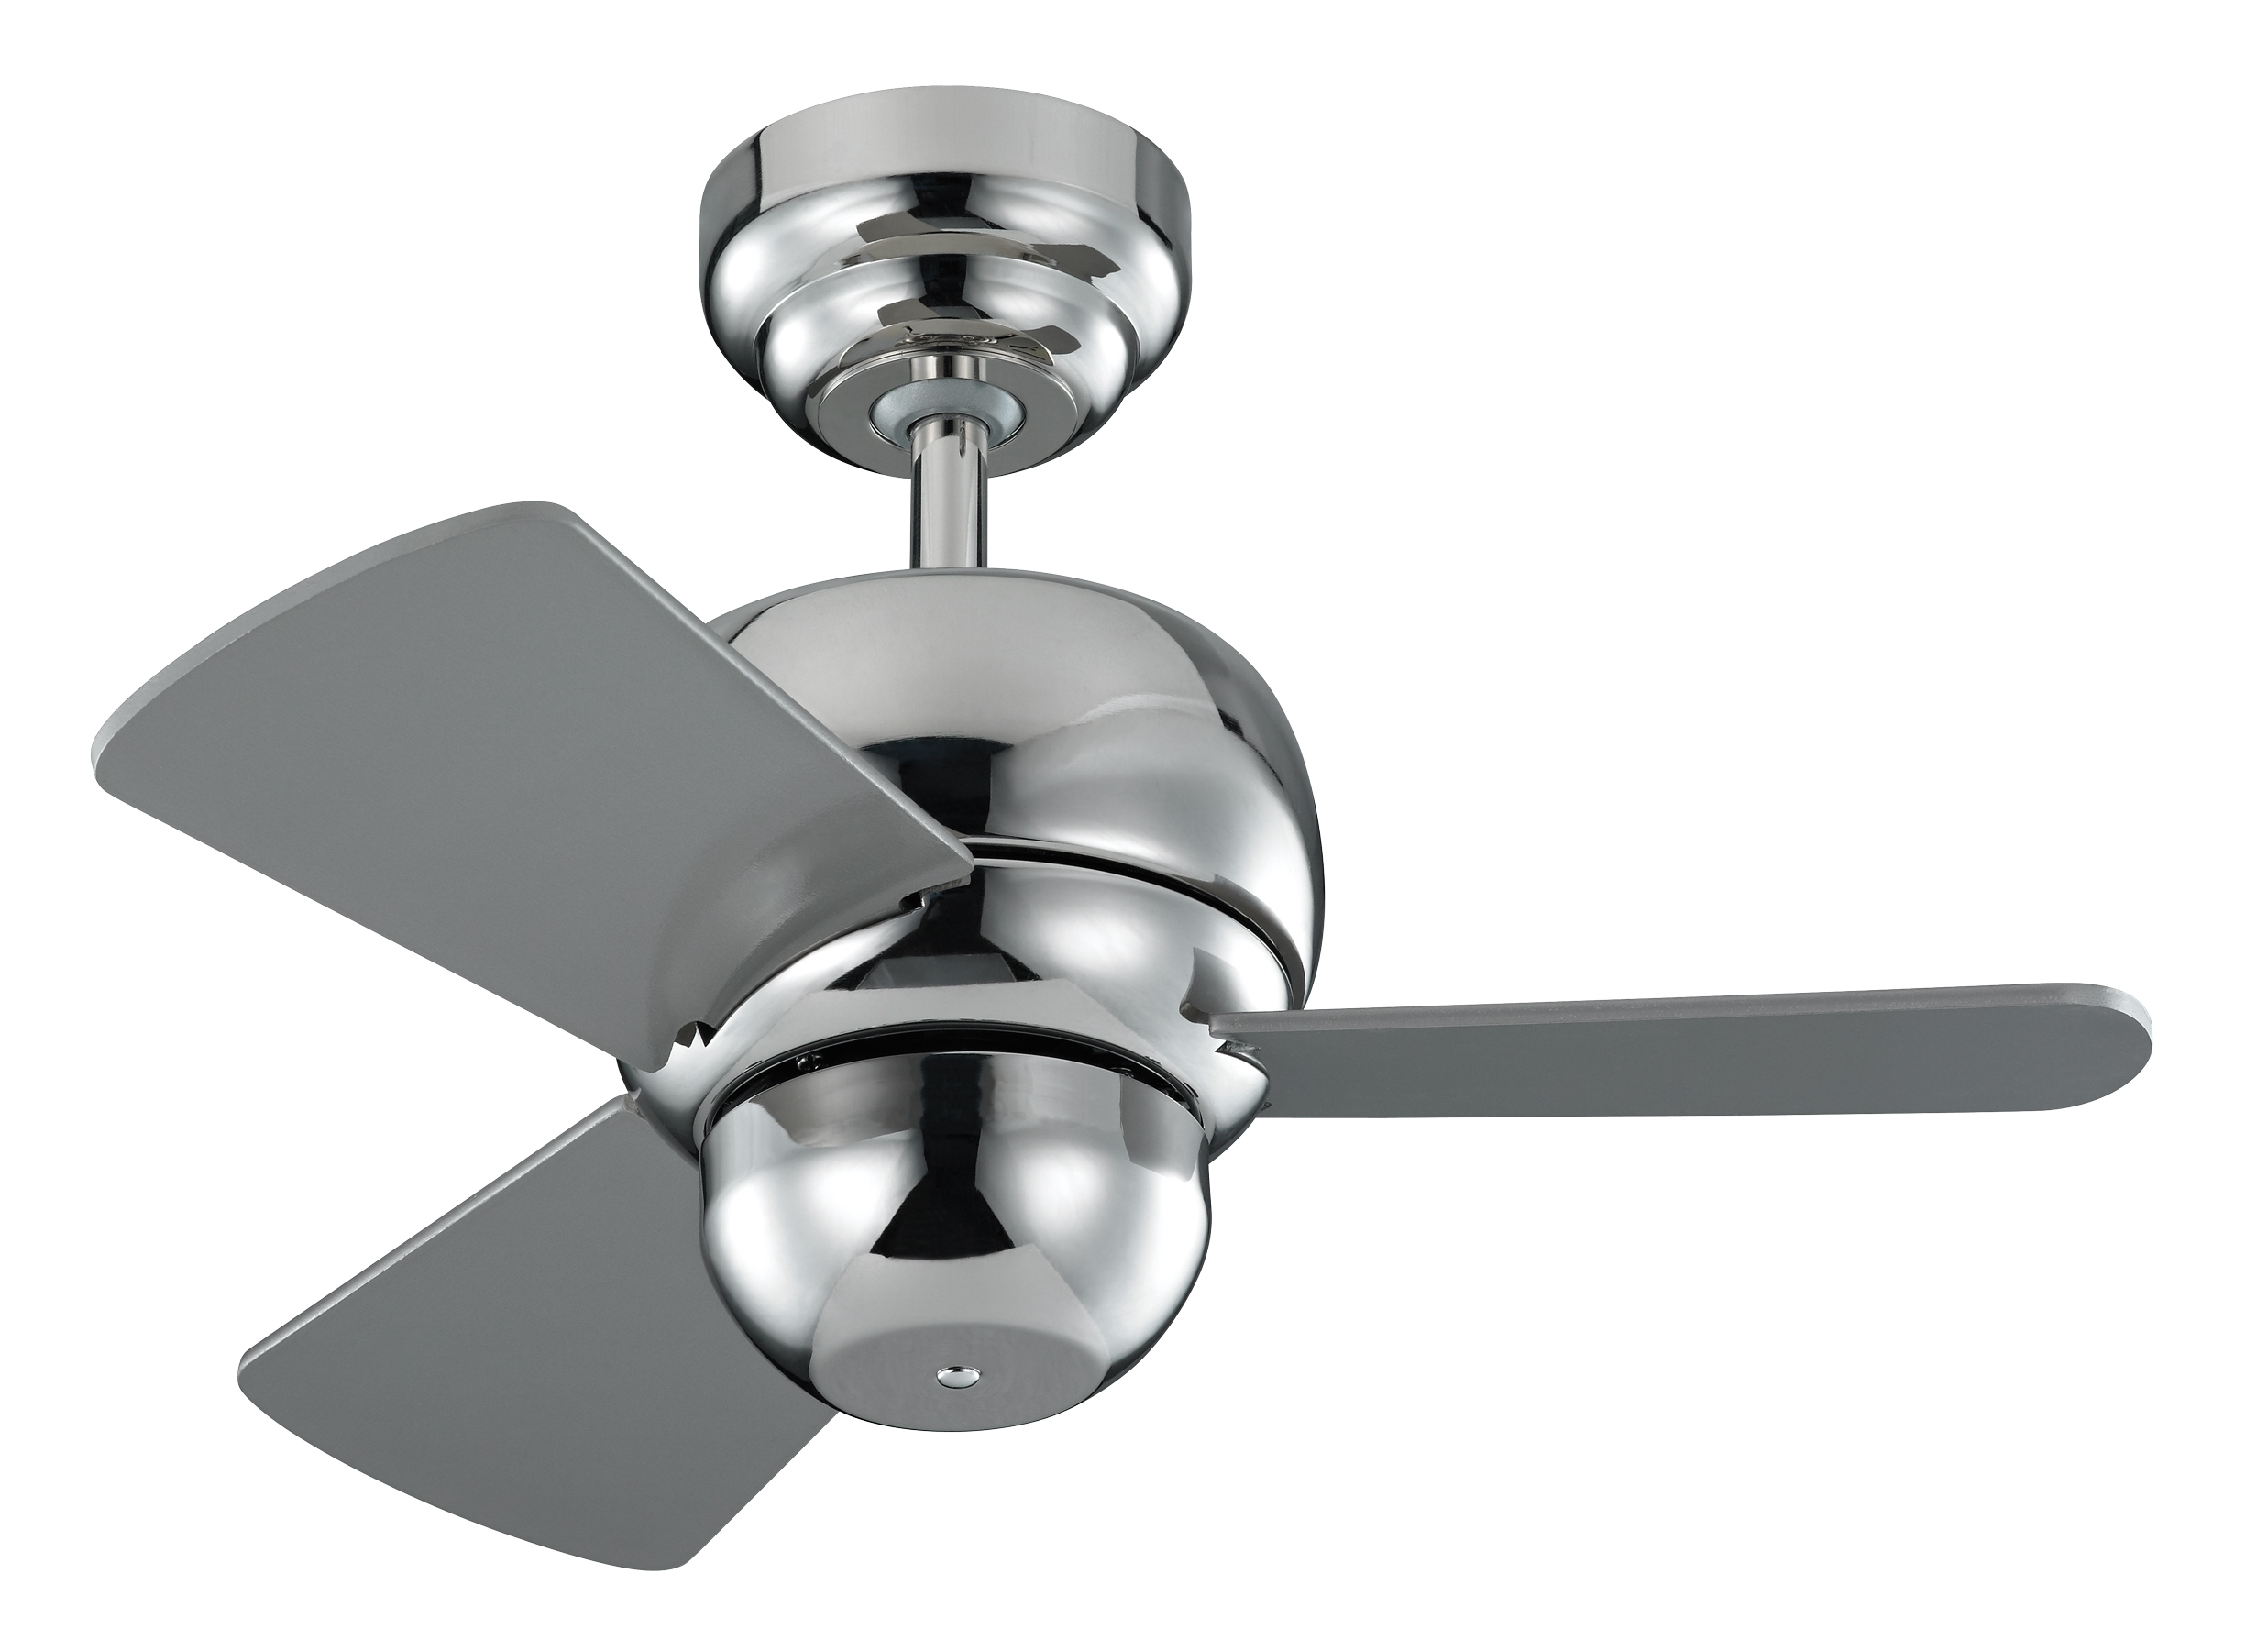 Best And Newest 20 Inch Outdoor Ceiling Fans With Light With Regard To Ceiling Fan: Recomended Mini Ceiling Fan For Home Mini Ceiling Fan (View 19 of 20)